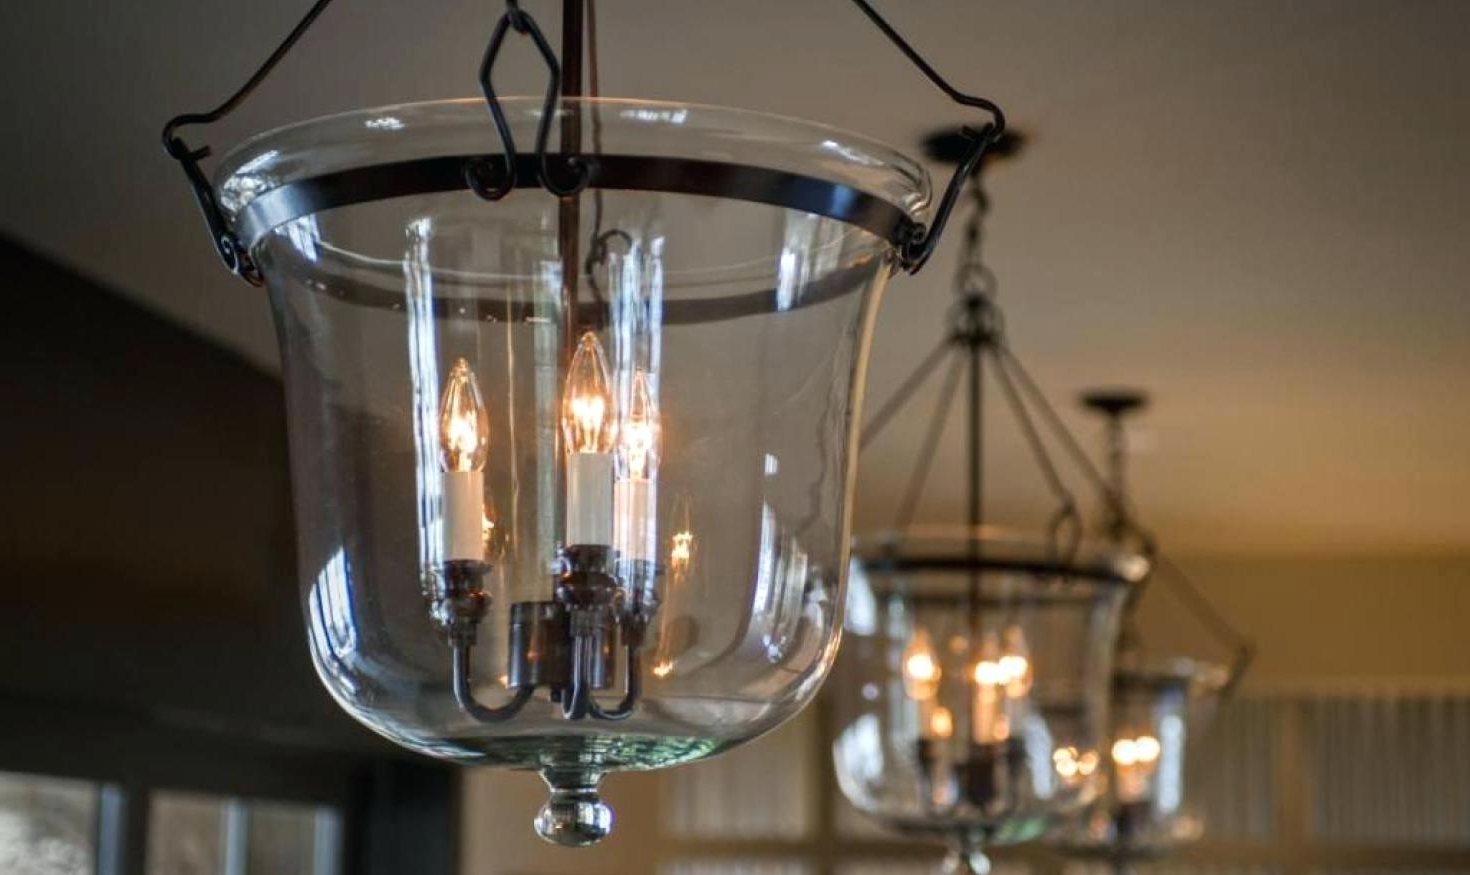 2018 Contemporary Modern Chandeliers In Decoration: Modern Chandeliers For High Ceilings (View 12 of 15)